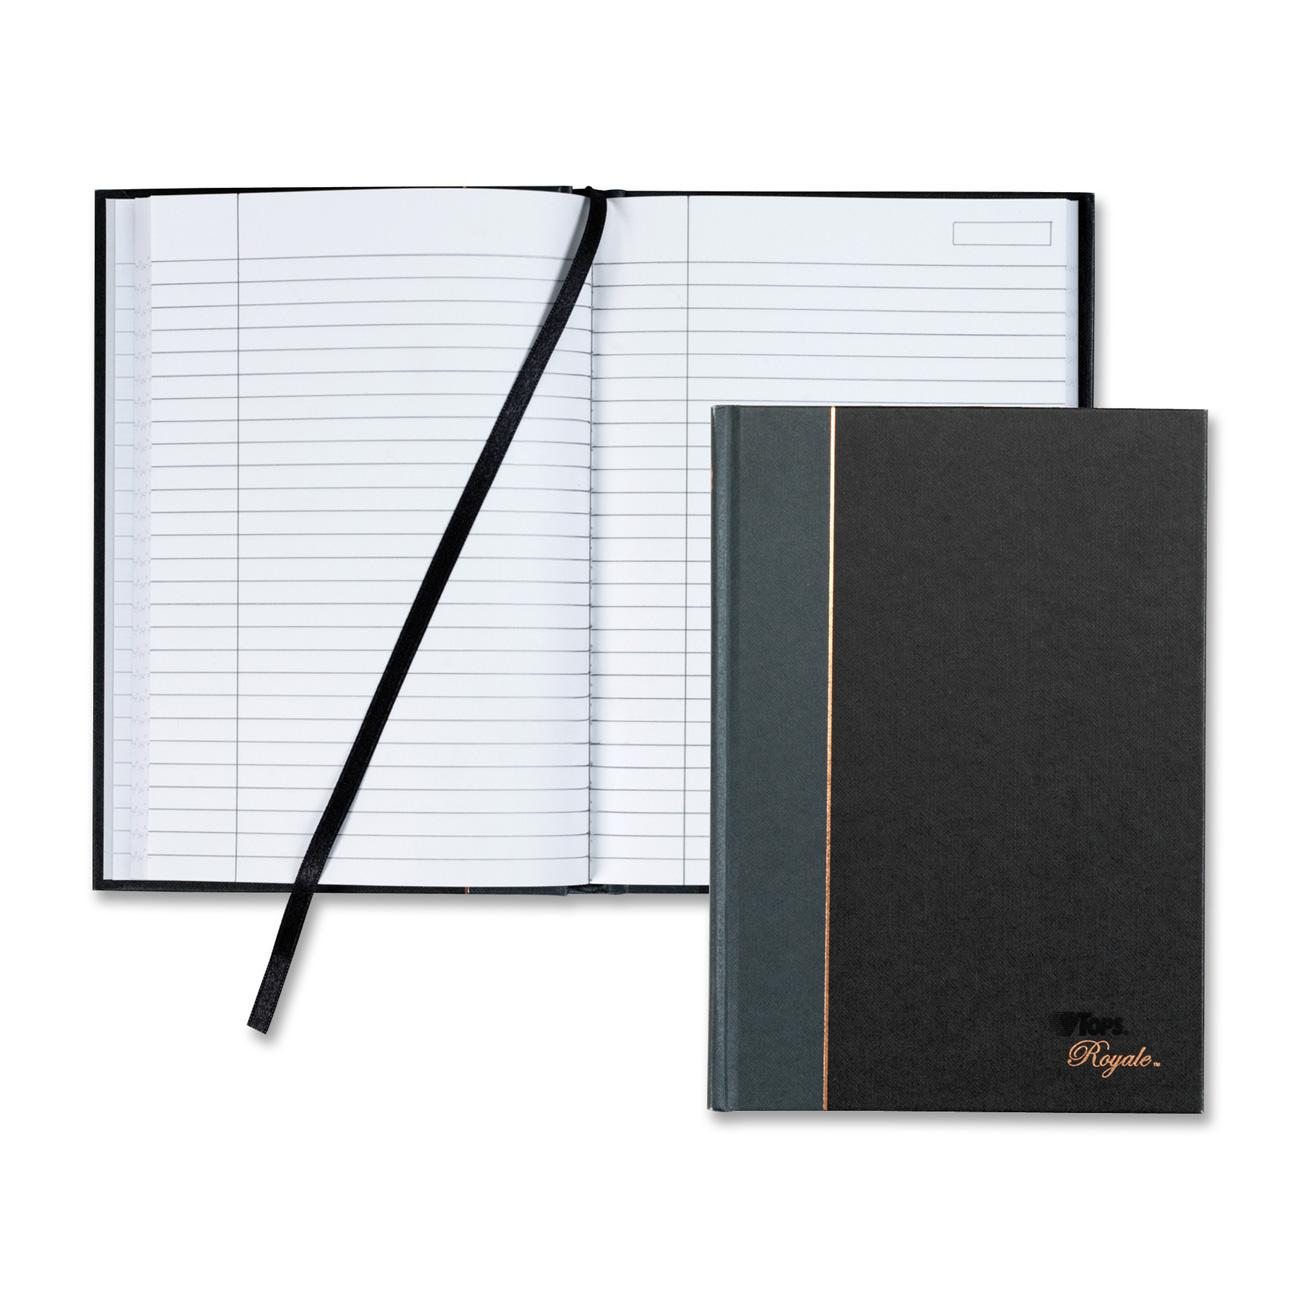 TOPS, TOP25230, Royal Executive Business Notebooks, 1 Each